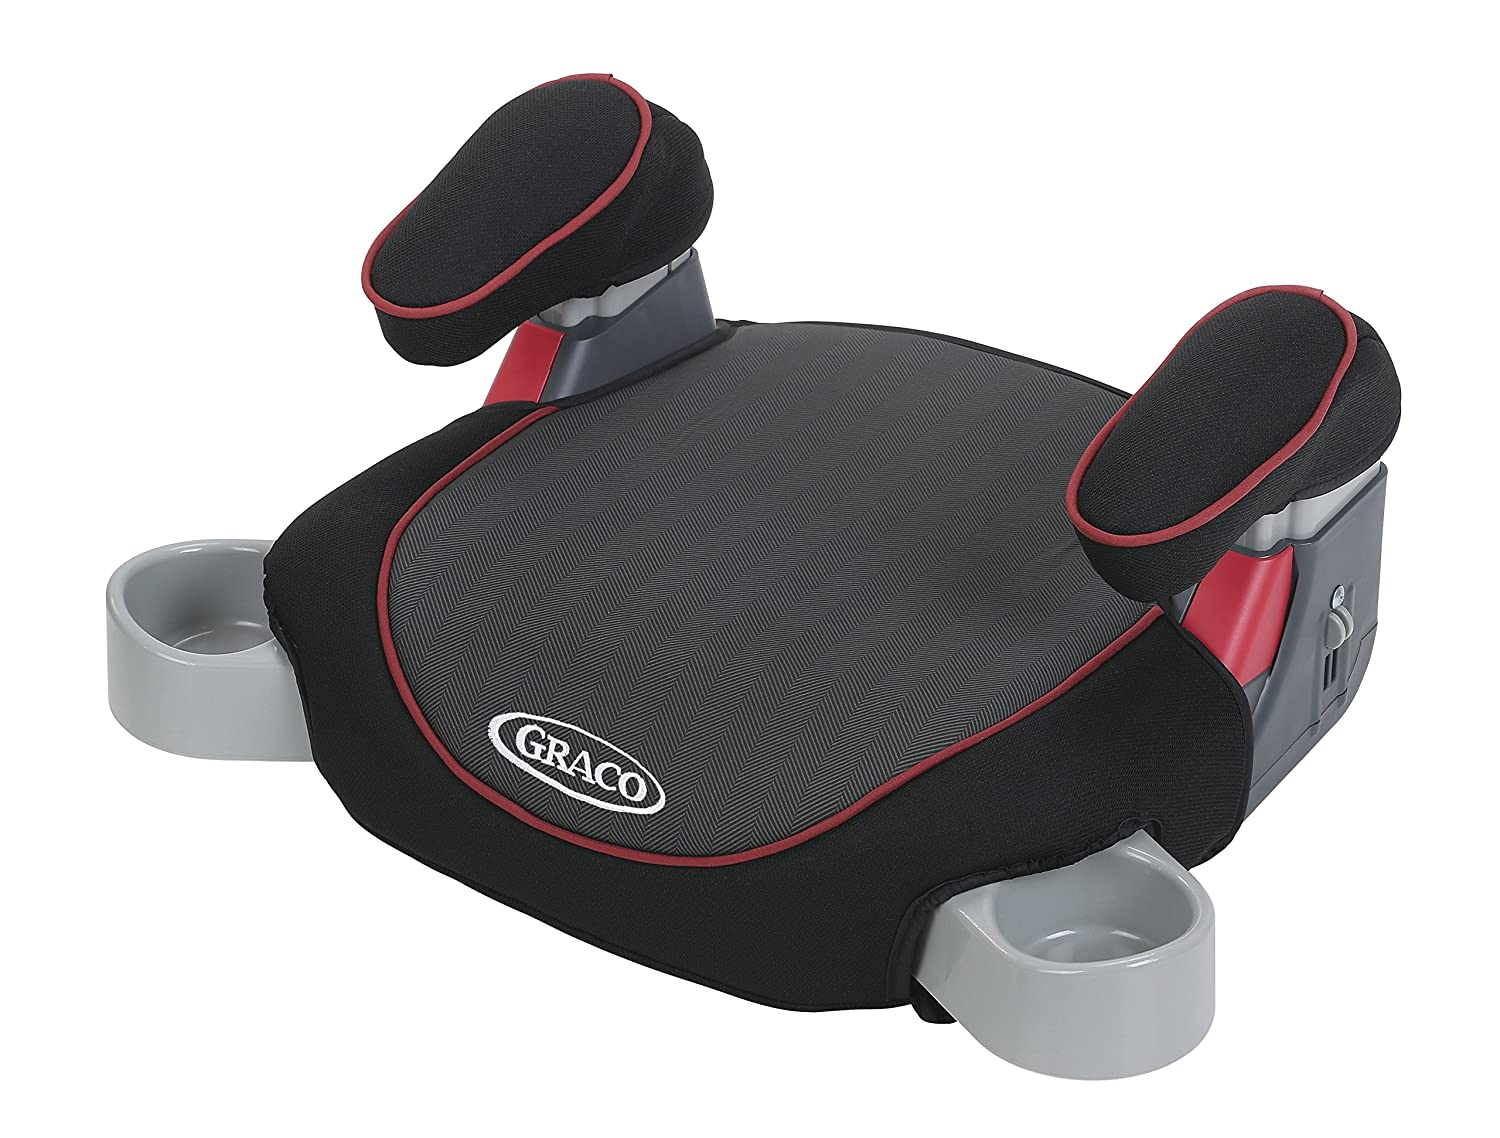 Graco Turbobooster Lx Backless Youth Booster with Affix Uas, Helo 2013555